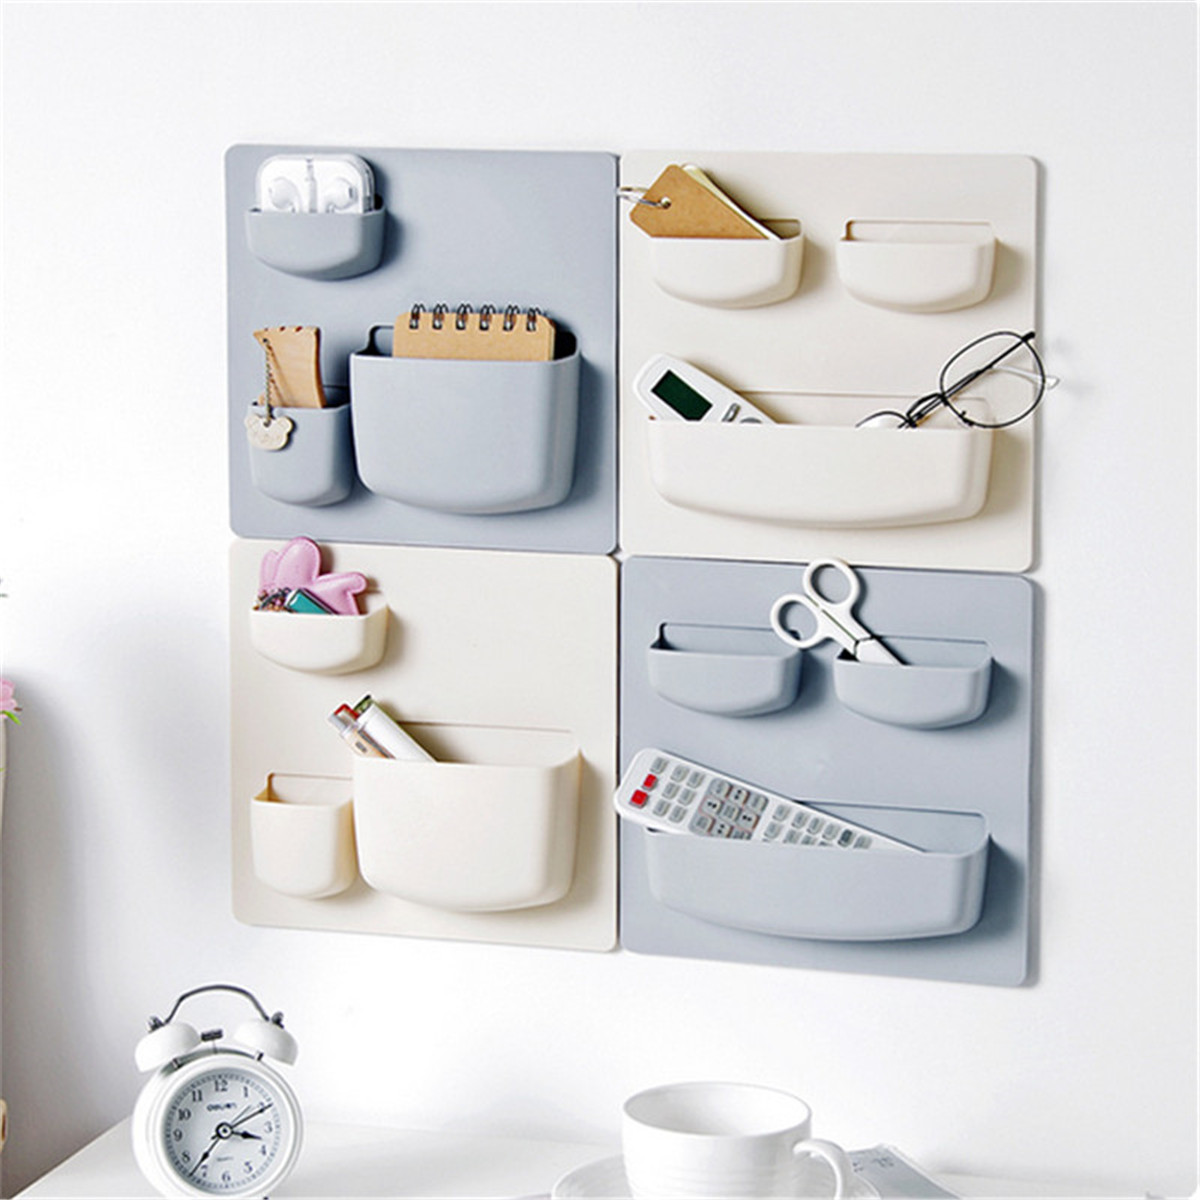 Kitchen Wall-Mounted Storage Rack Sundries Storage Holder Adhesive Stickers Fixed Bathroom Organizer